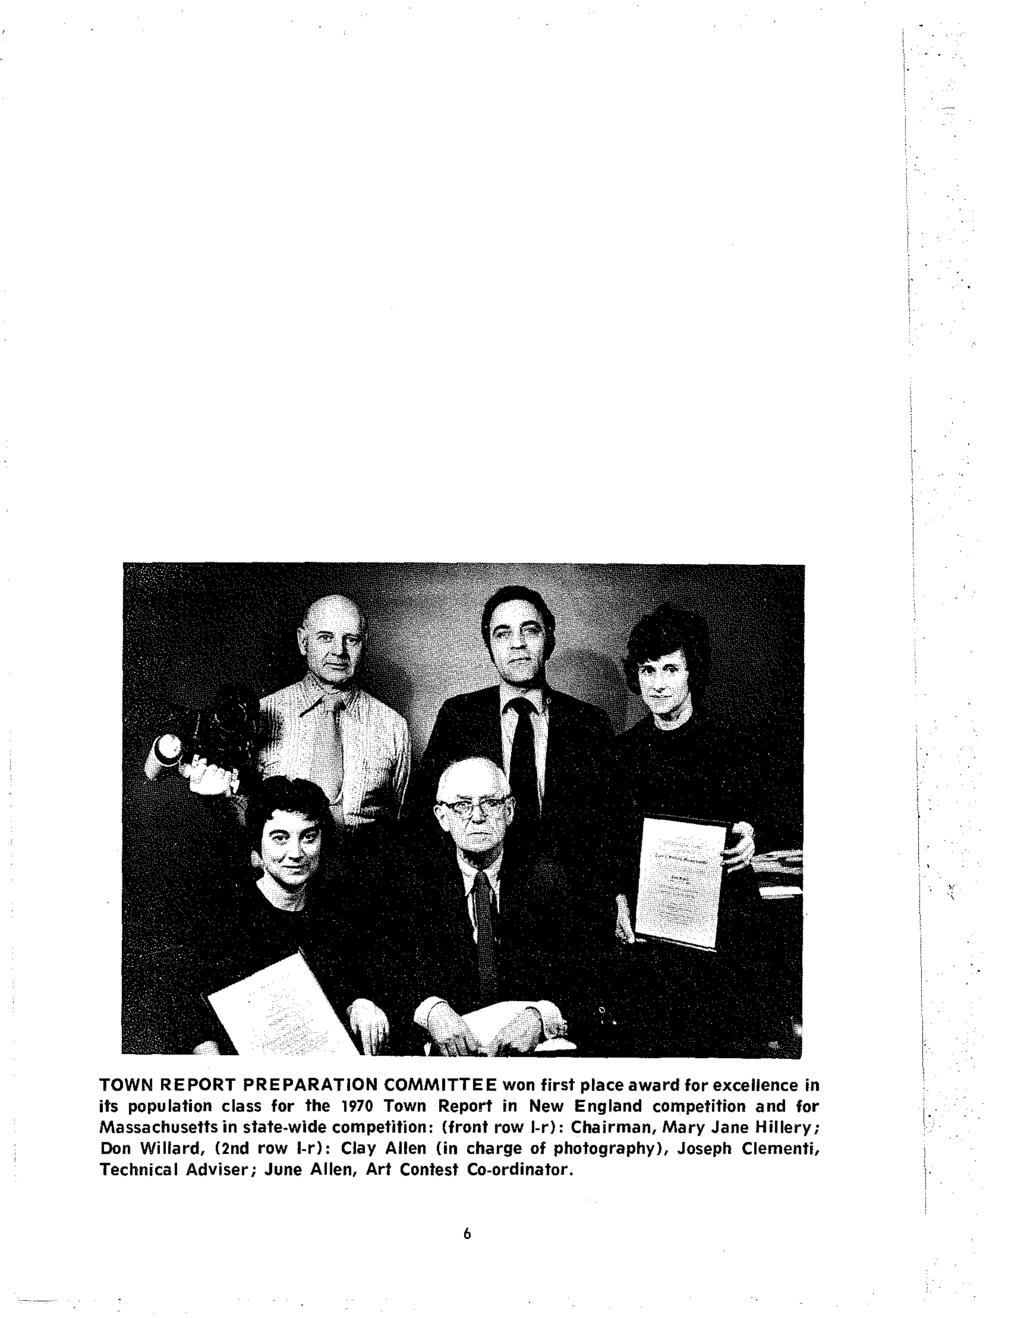 TOWN REPORT PREPARATION COMMITTEE won first place award for excellence in its population class for the 1970 Town Report in New England competition and for Massachusetts in state-wide